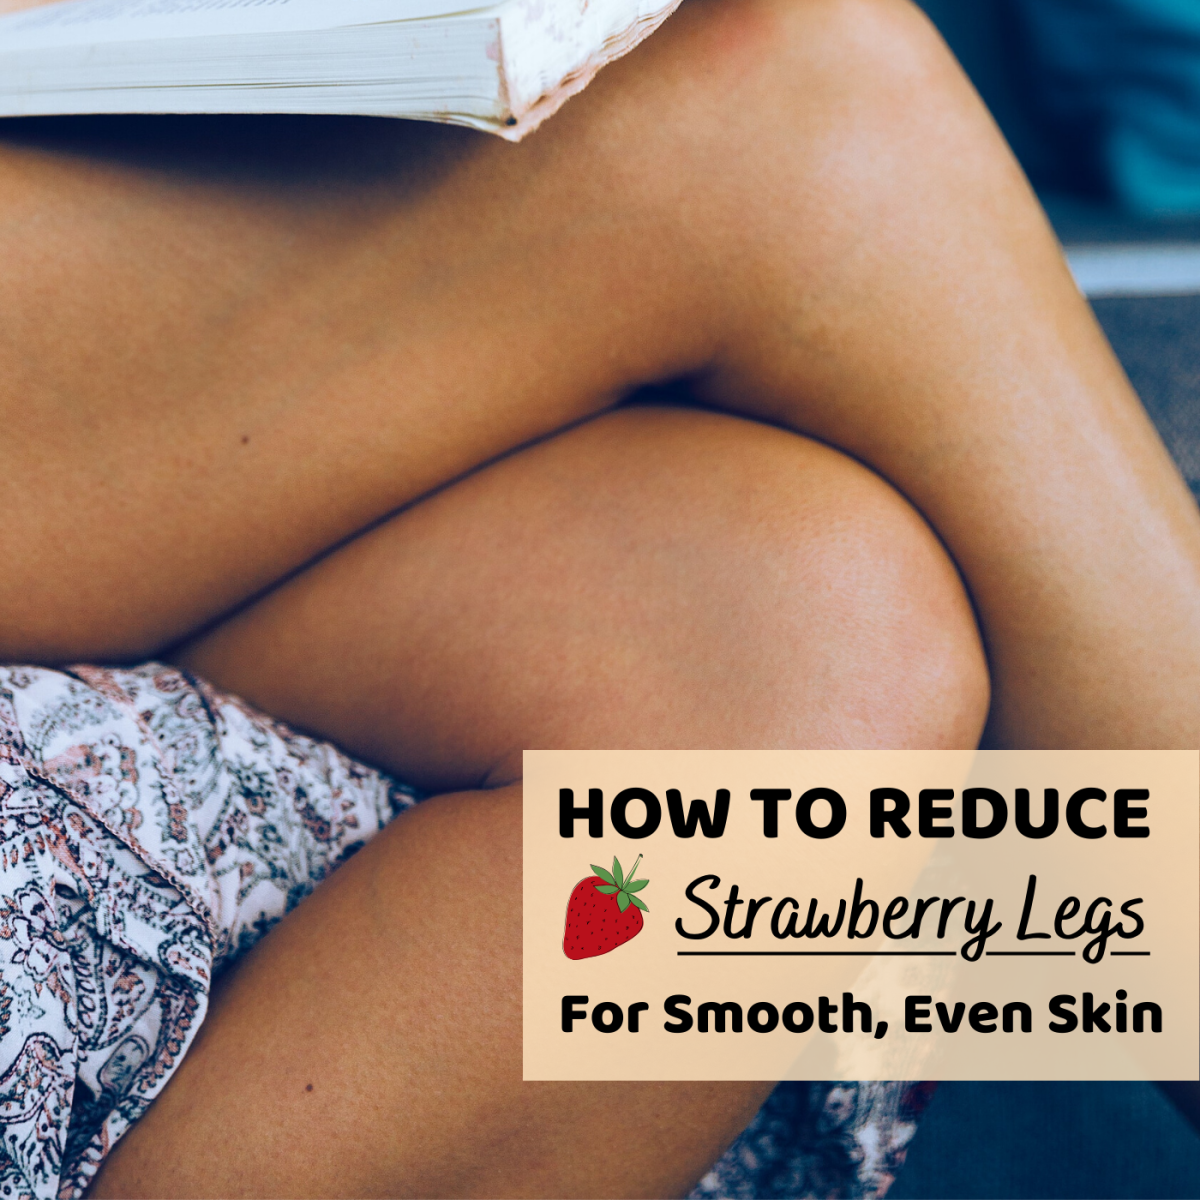 What Are Strawberry Legs and How Can You Get Rid of Them?